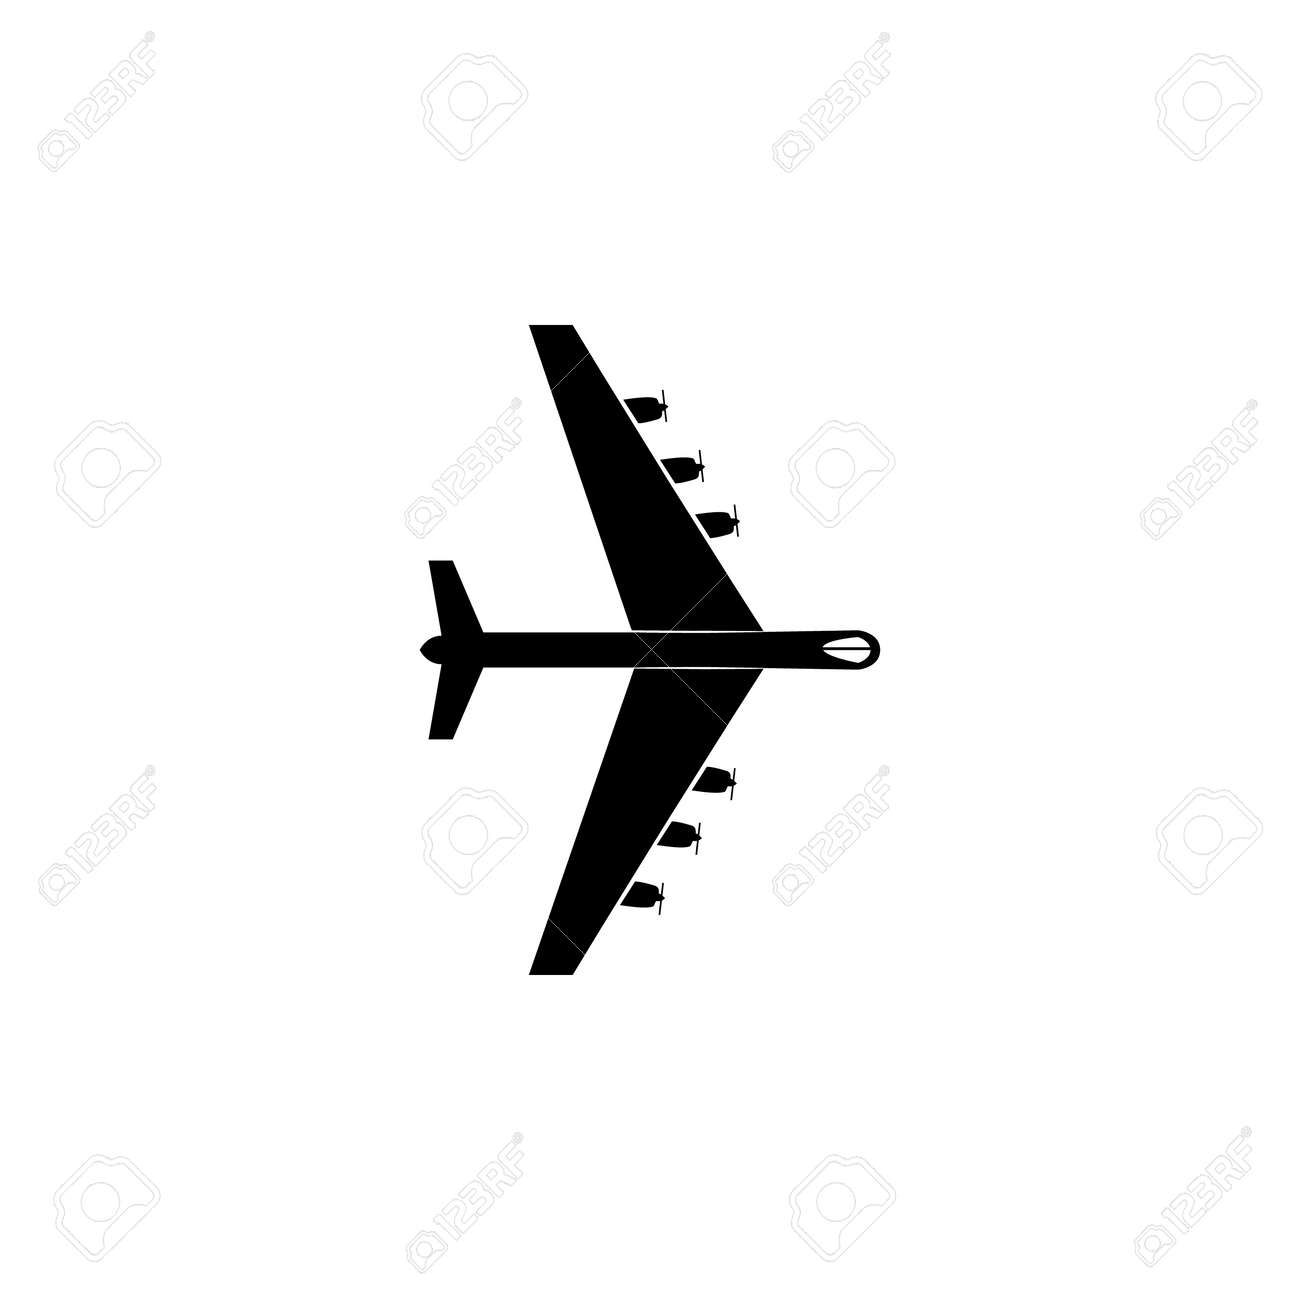 Heavy military aircraft icon  Military aircraft element icon